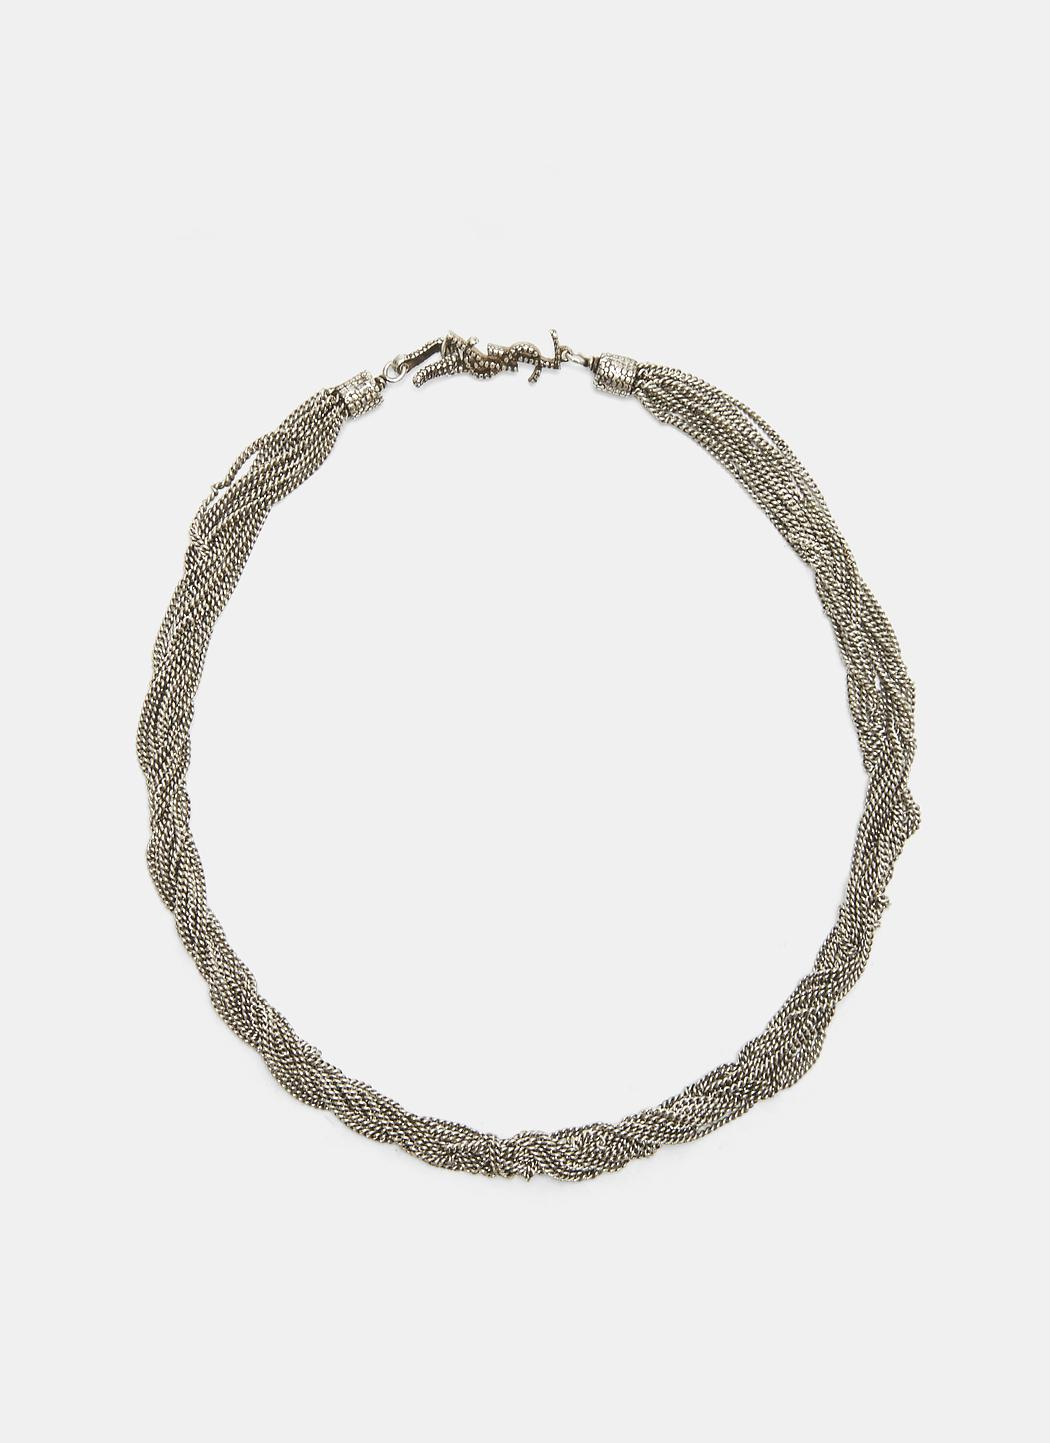 Saint Laurent LouLou twisted necklace - Metallic